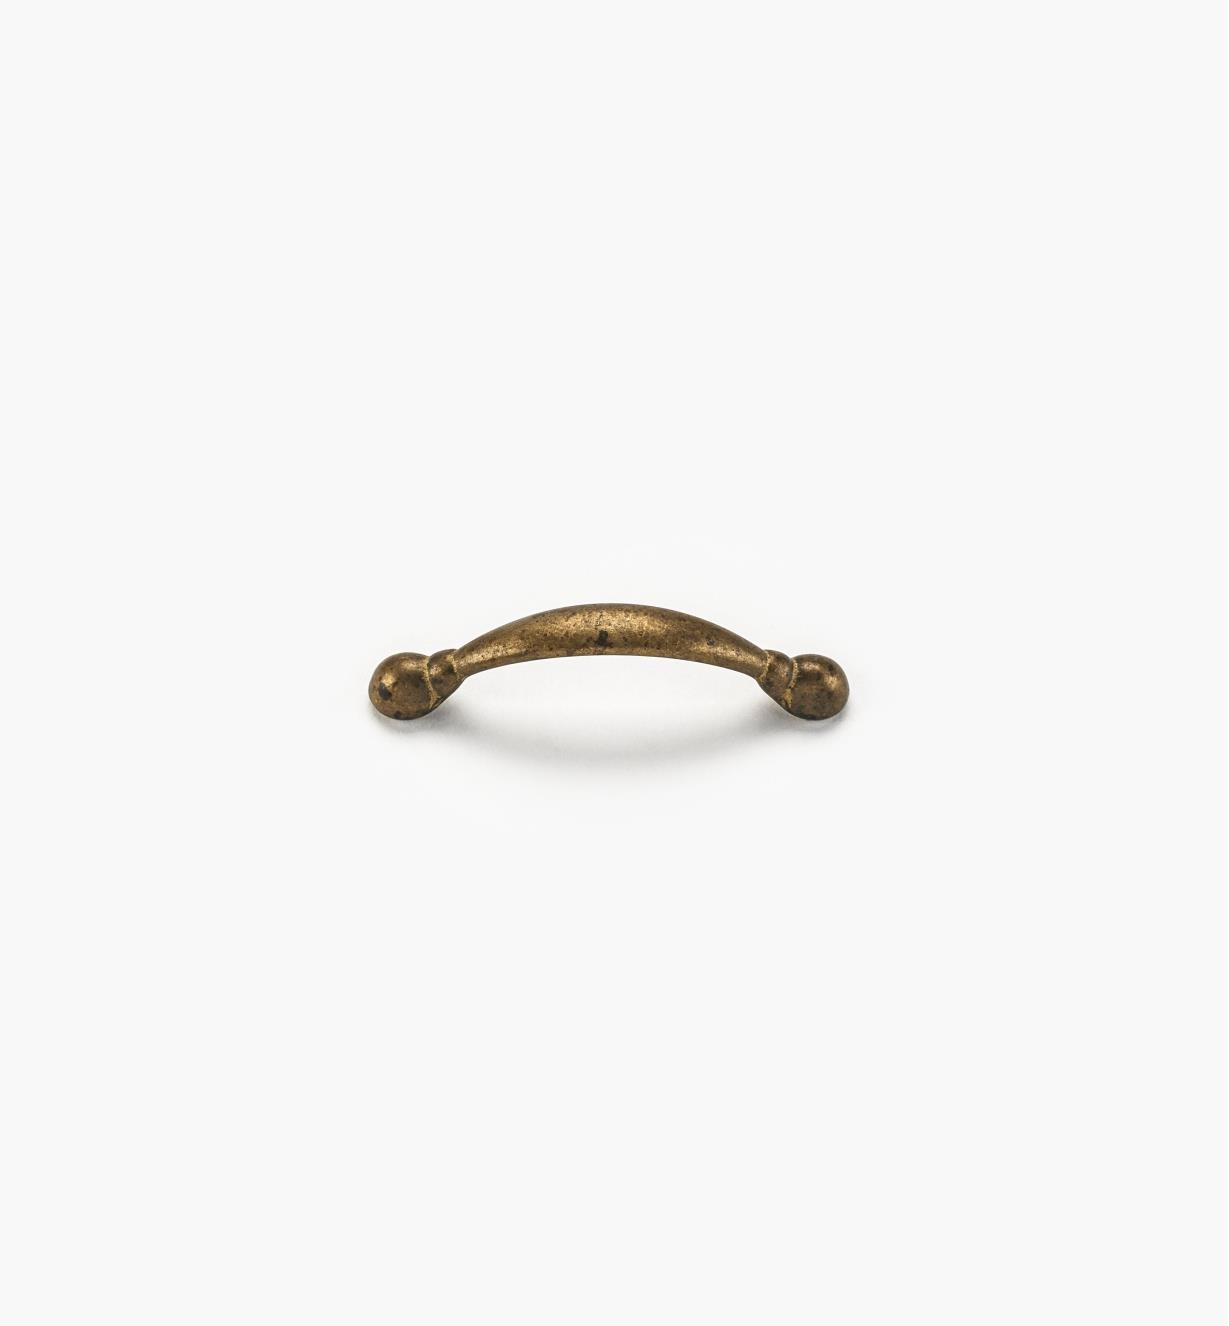 00A2911 - 64mm Old Brass Handle